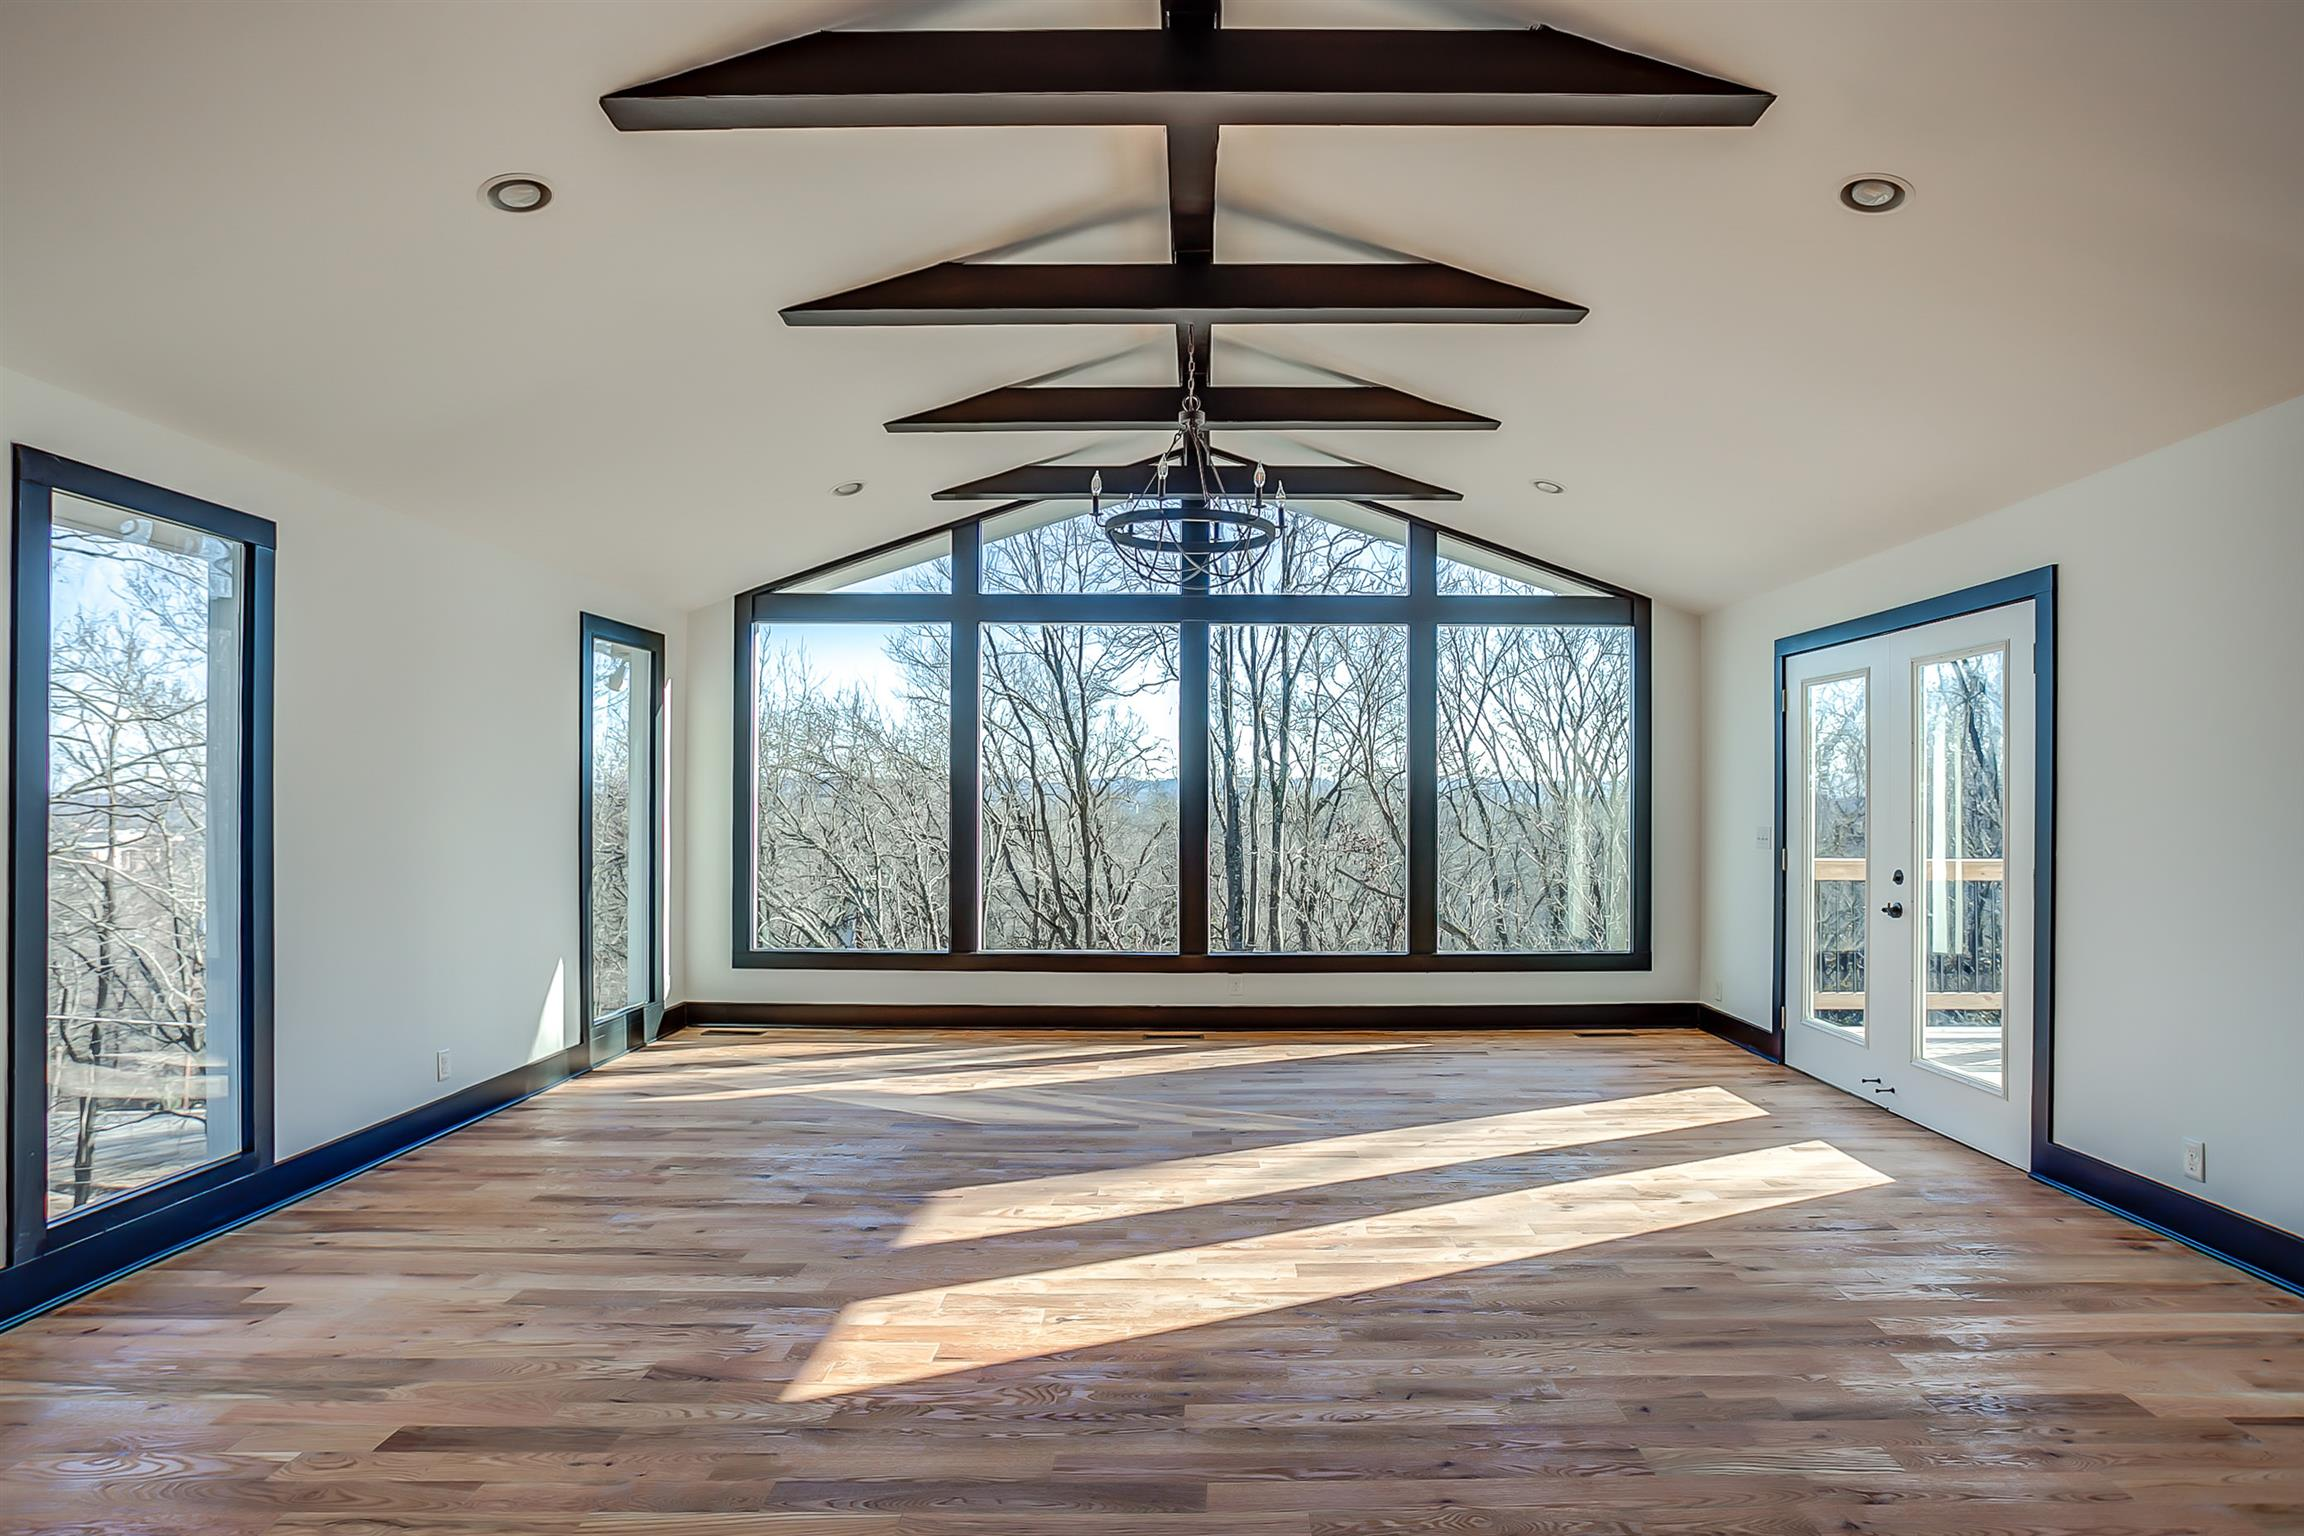 City living with COMPLETE PRIVACY on 1 acre! 2 wet bars, multiple decks, STUNNING West Nashville views! 2 master bedroom with en suites, 3 living rooms, there truly is nothing like this home in a location you cannot beat!